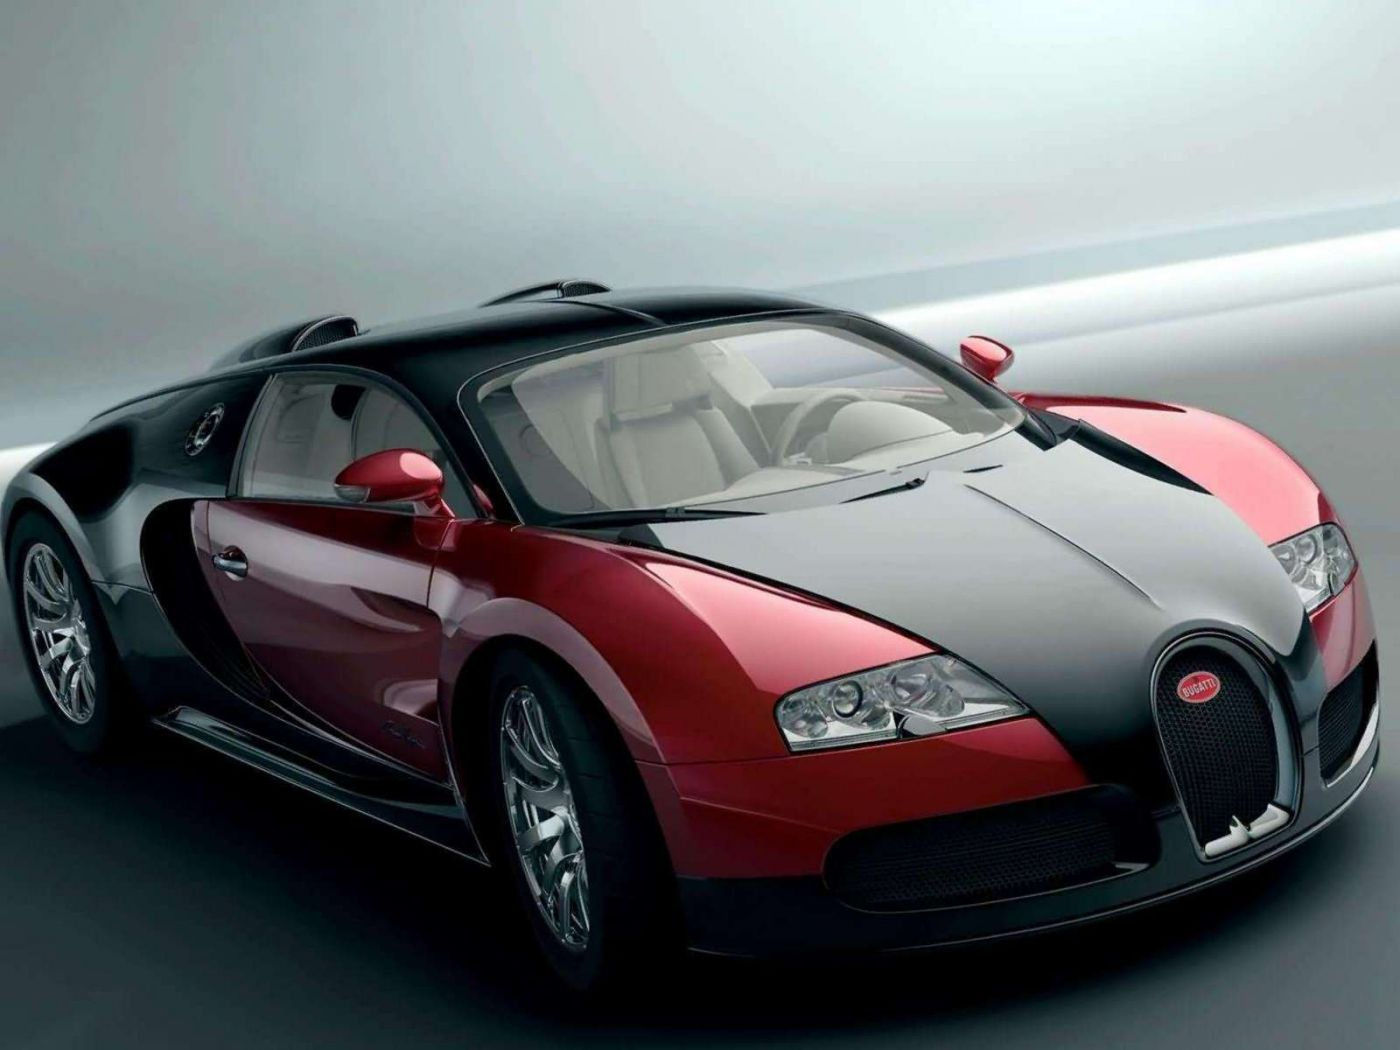 Bugatti Veyron Wallpaper - Supercars